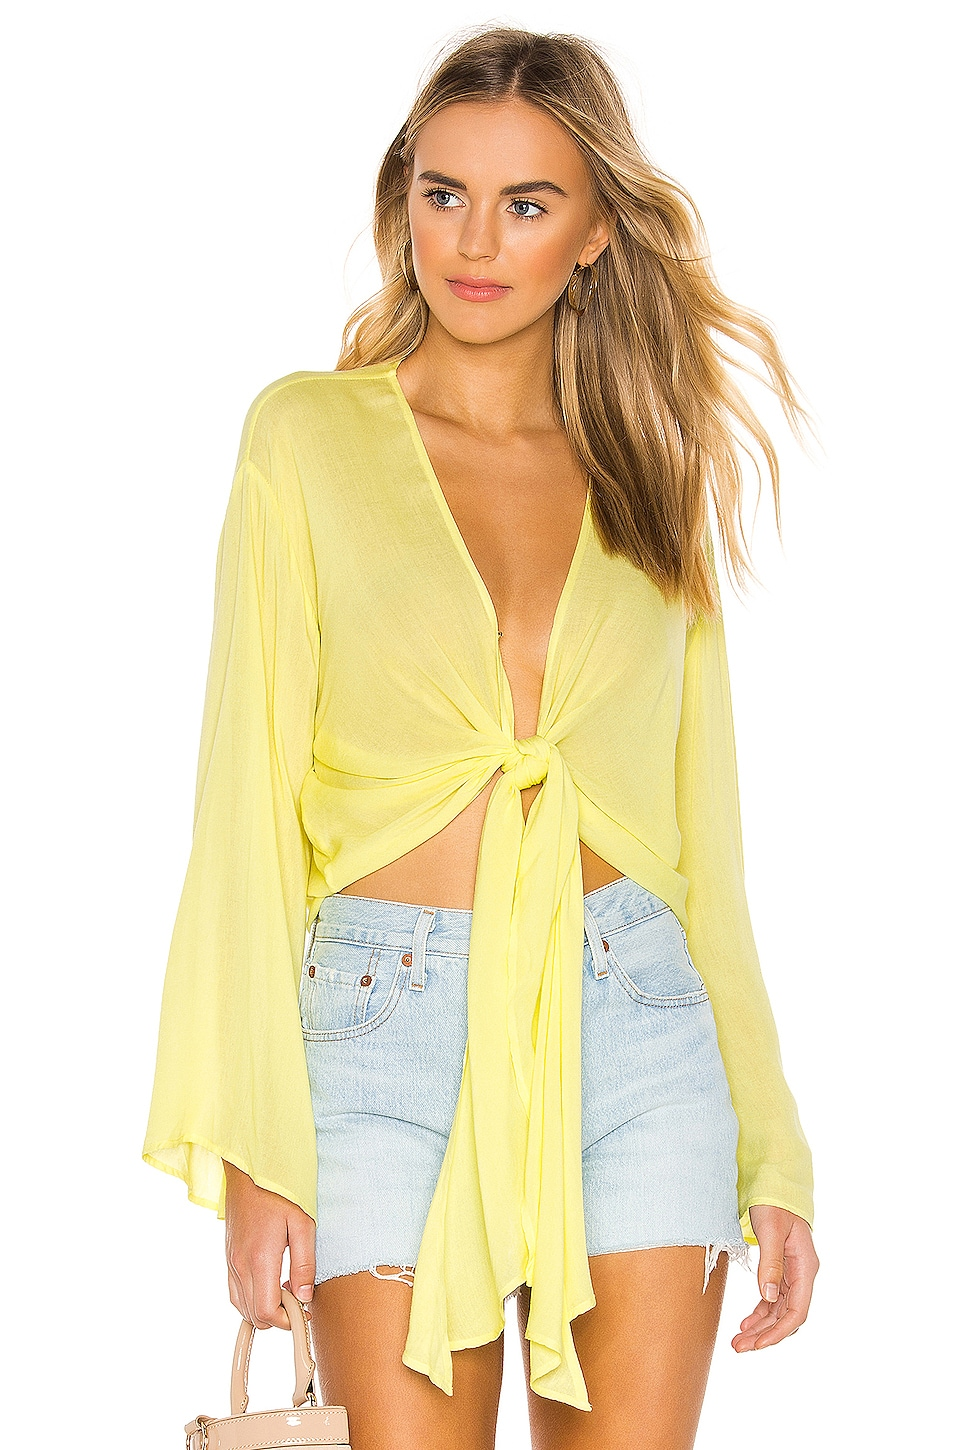 YFB CLOTHING Free Fall Top in Lemon